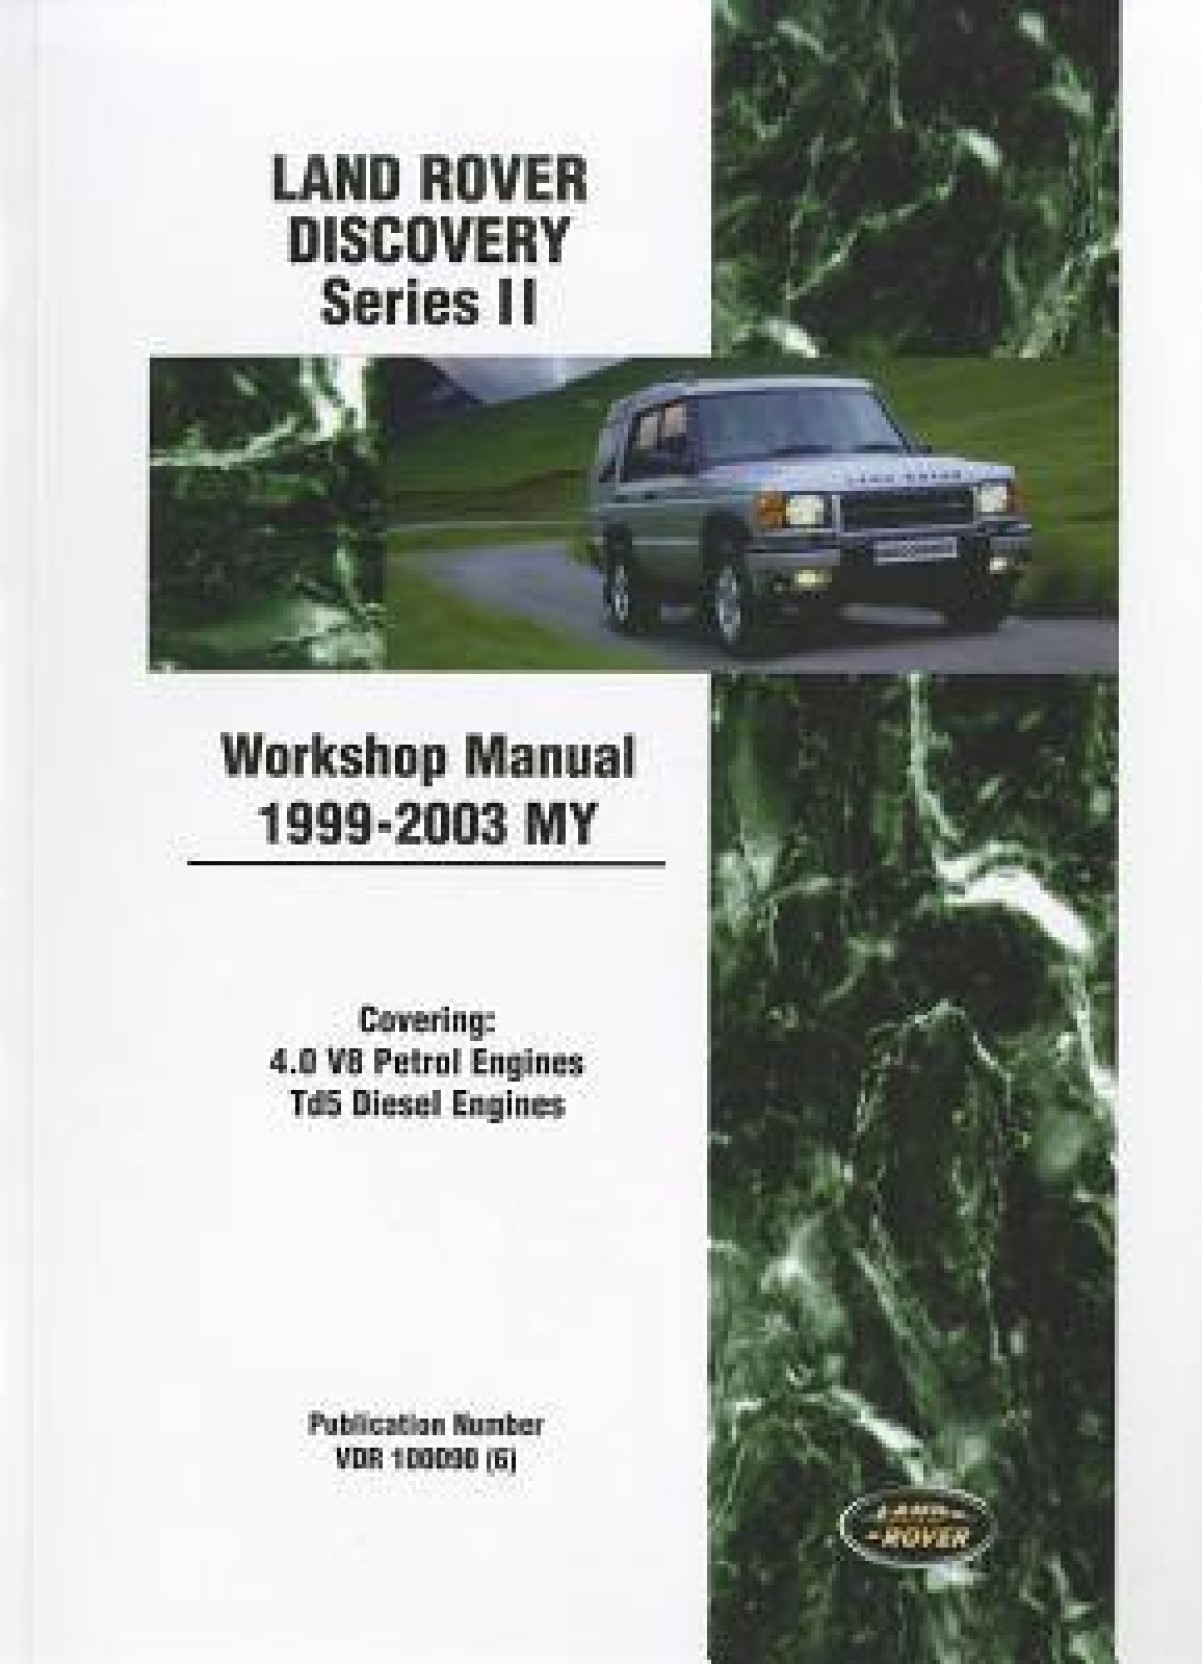 Land Rover Discovery Series II Workshop Manual 1999-2003 MY (Land Rover  Workshop Manuals. ADD TO CART